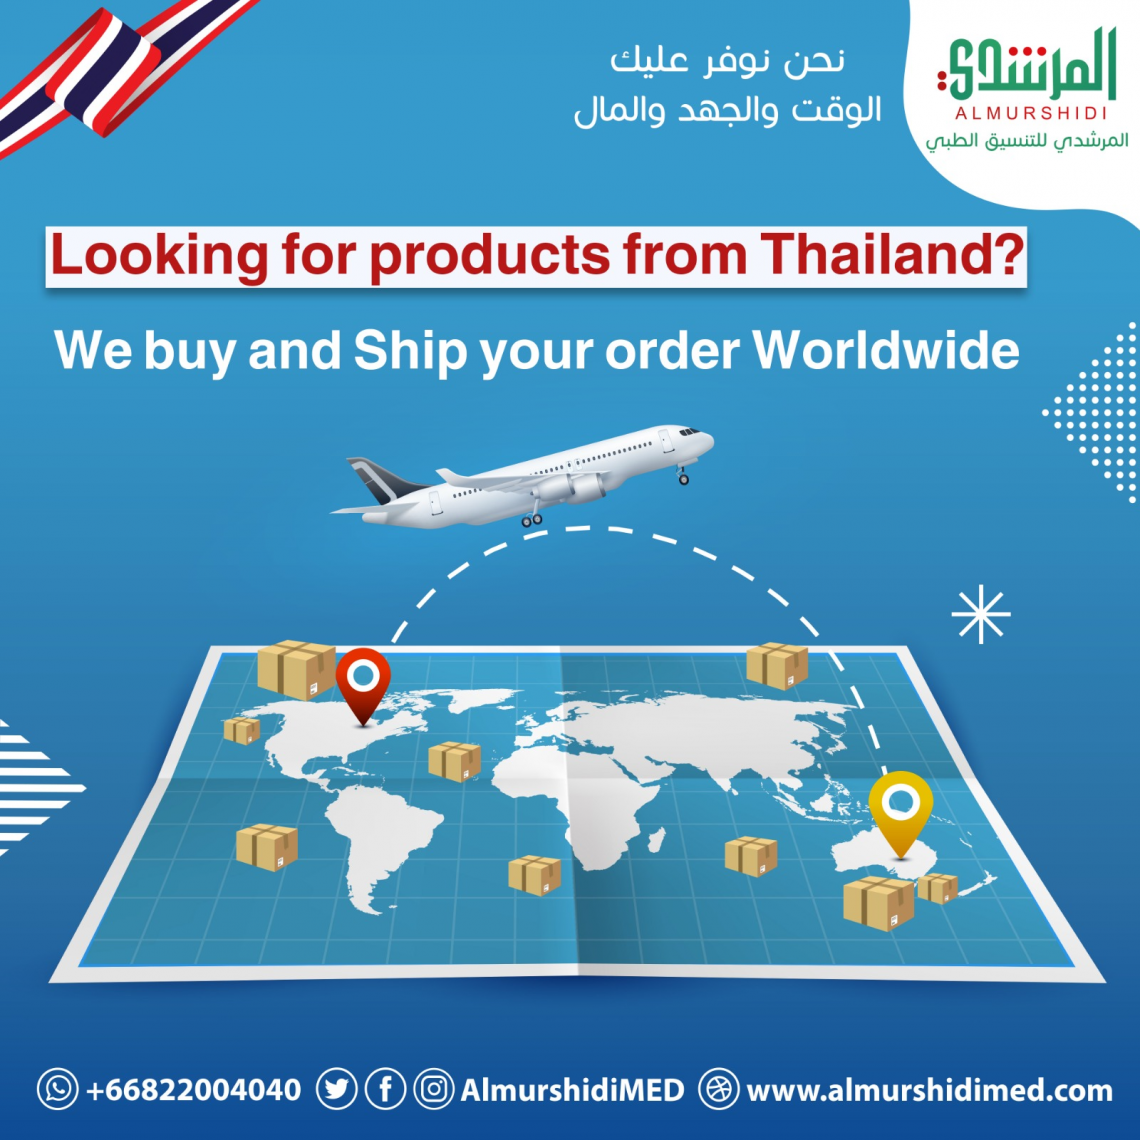 Thailand Products Worldwide Shipments